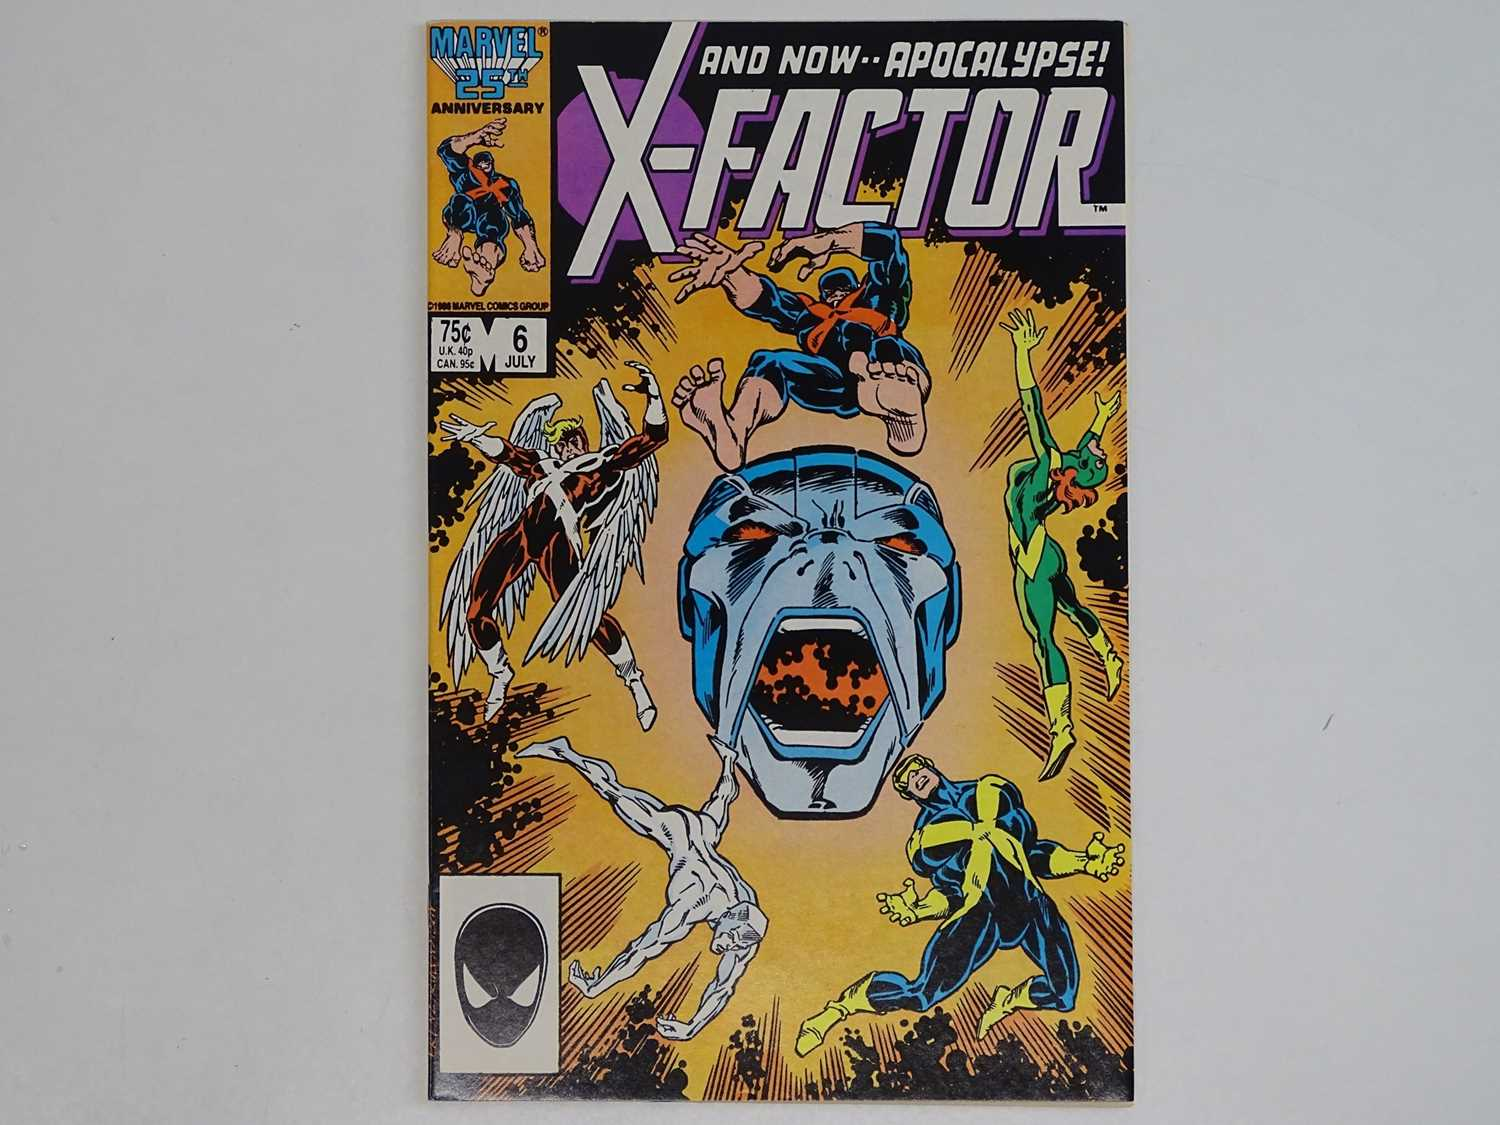 X-FACTOR #6 - (1986 - MARVEL) - Includes First (Full) Appearance of Apocalypse - Flat/Unfolded - a